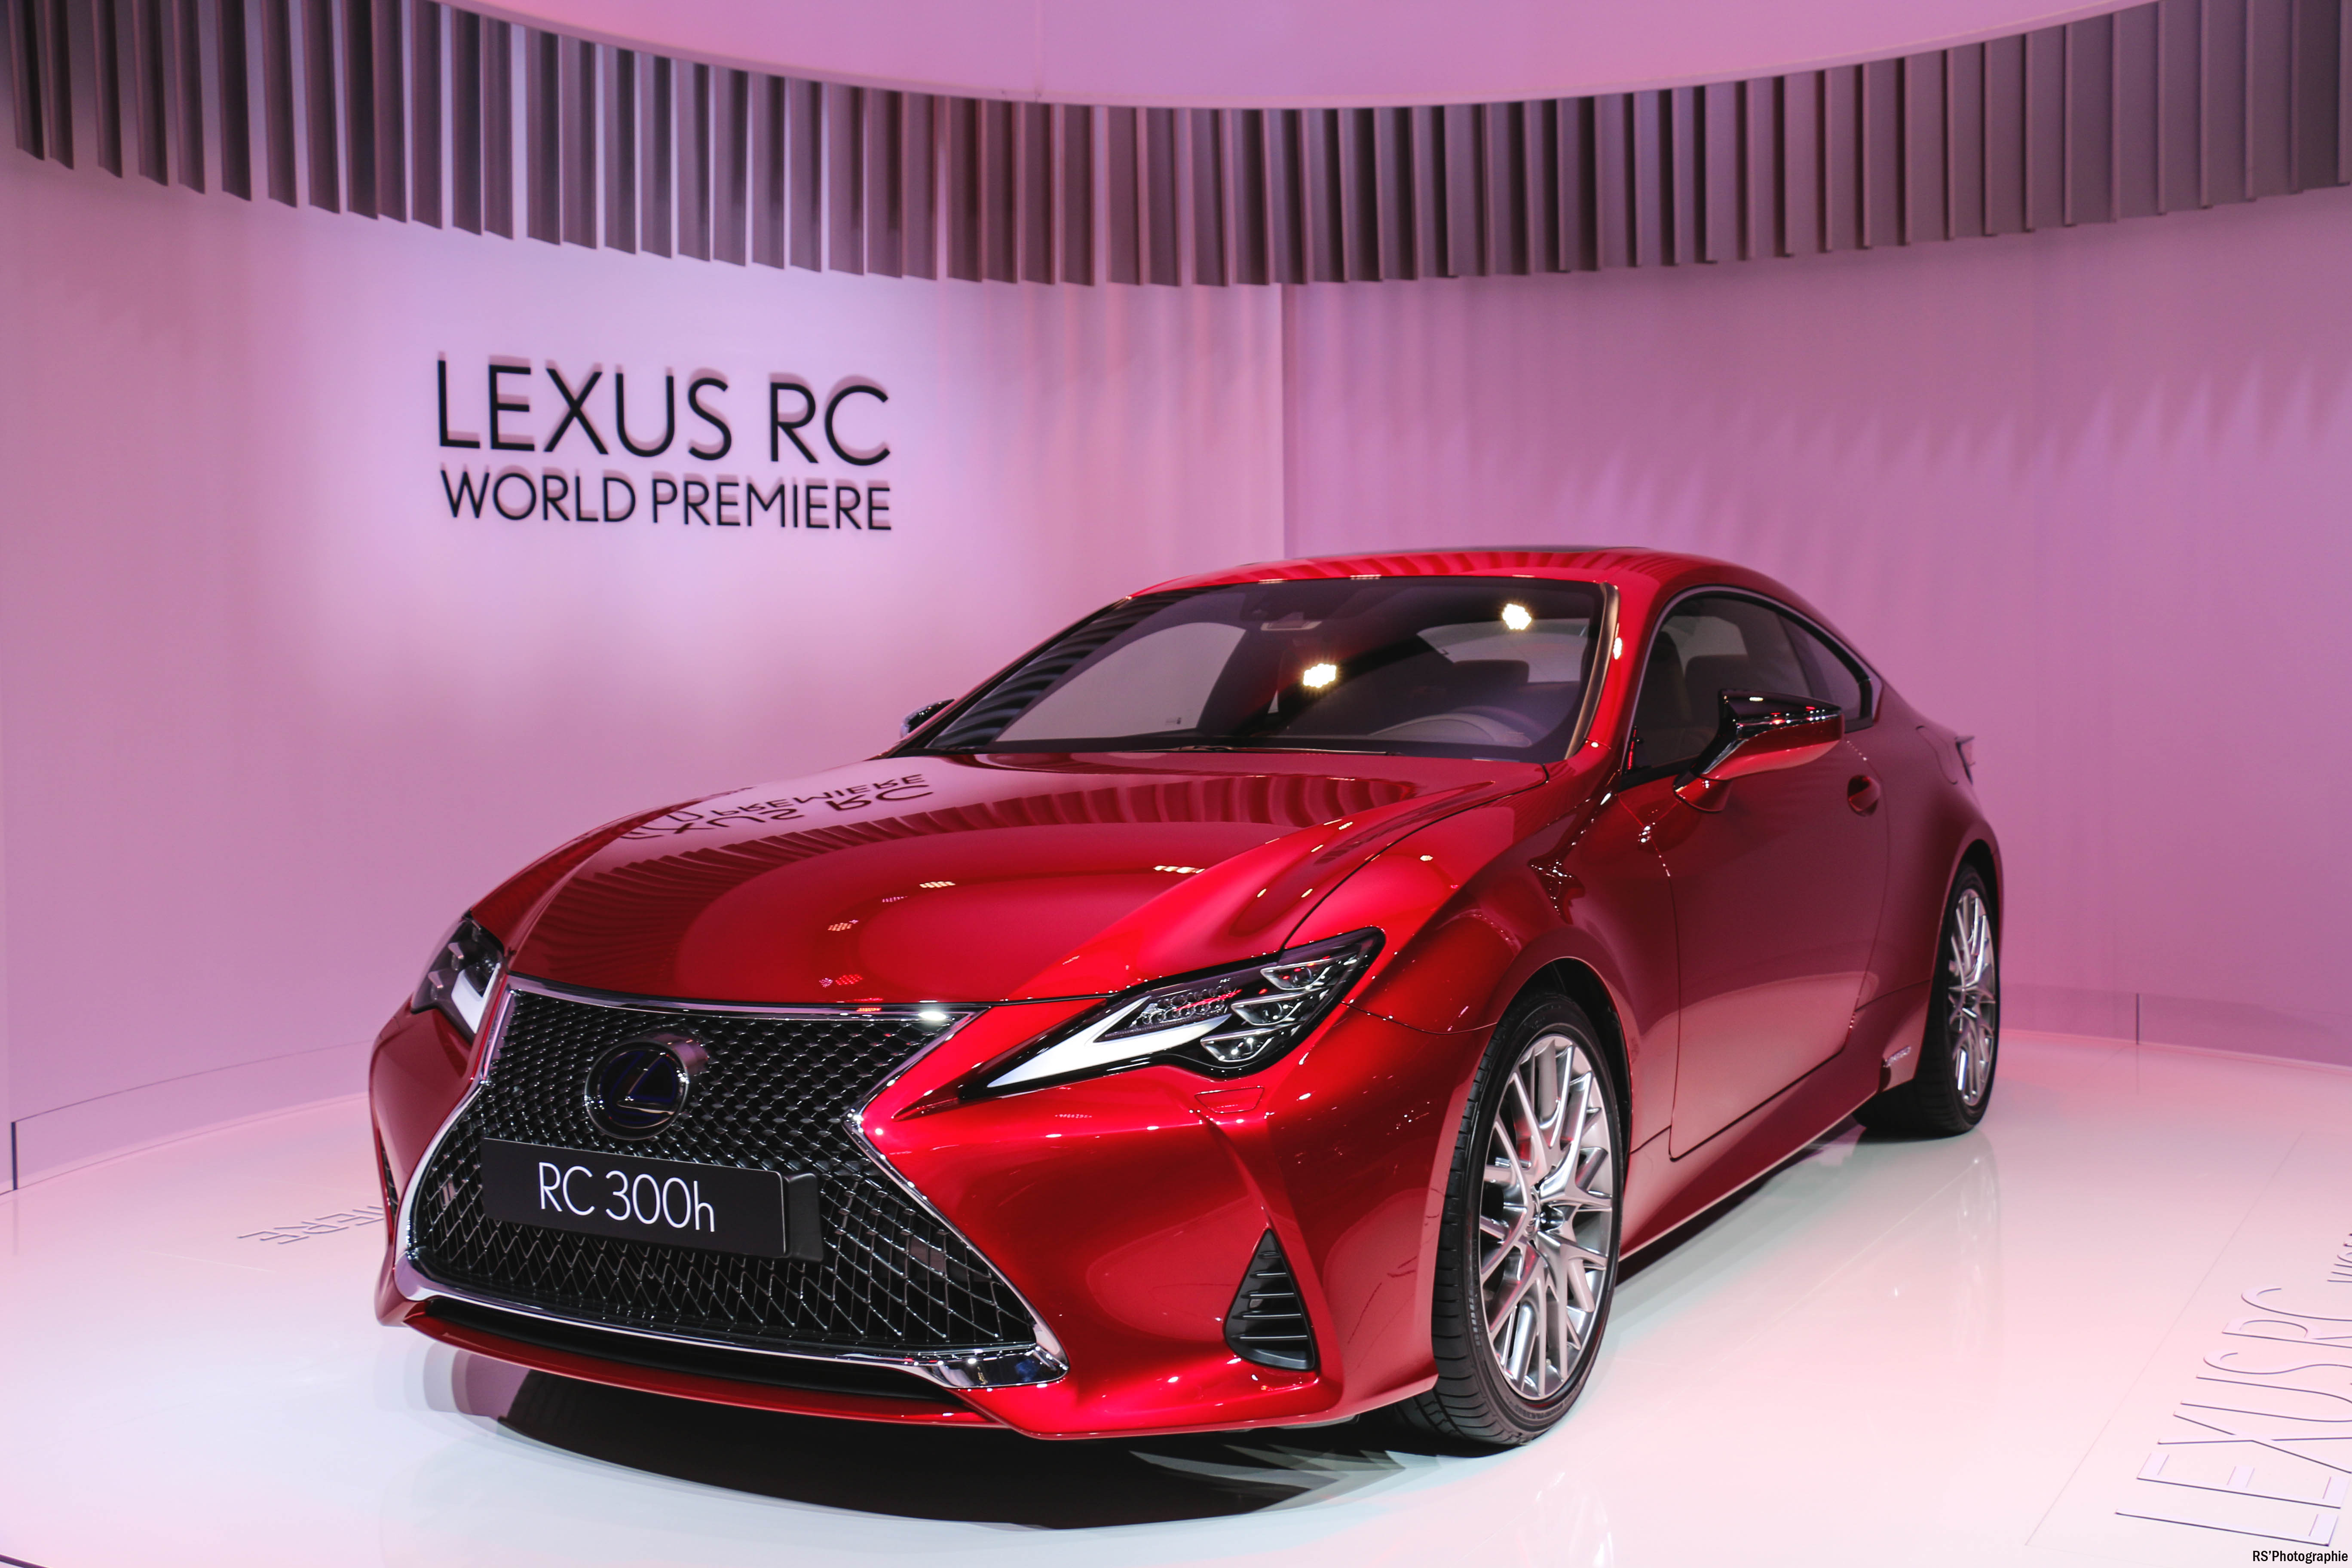 Lexus RC 300h - front - Paris Motor Show - 2018 - Mondial Auto - photo by Arnaud Demasier RS Photographie